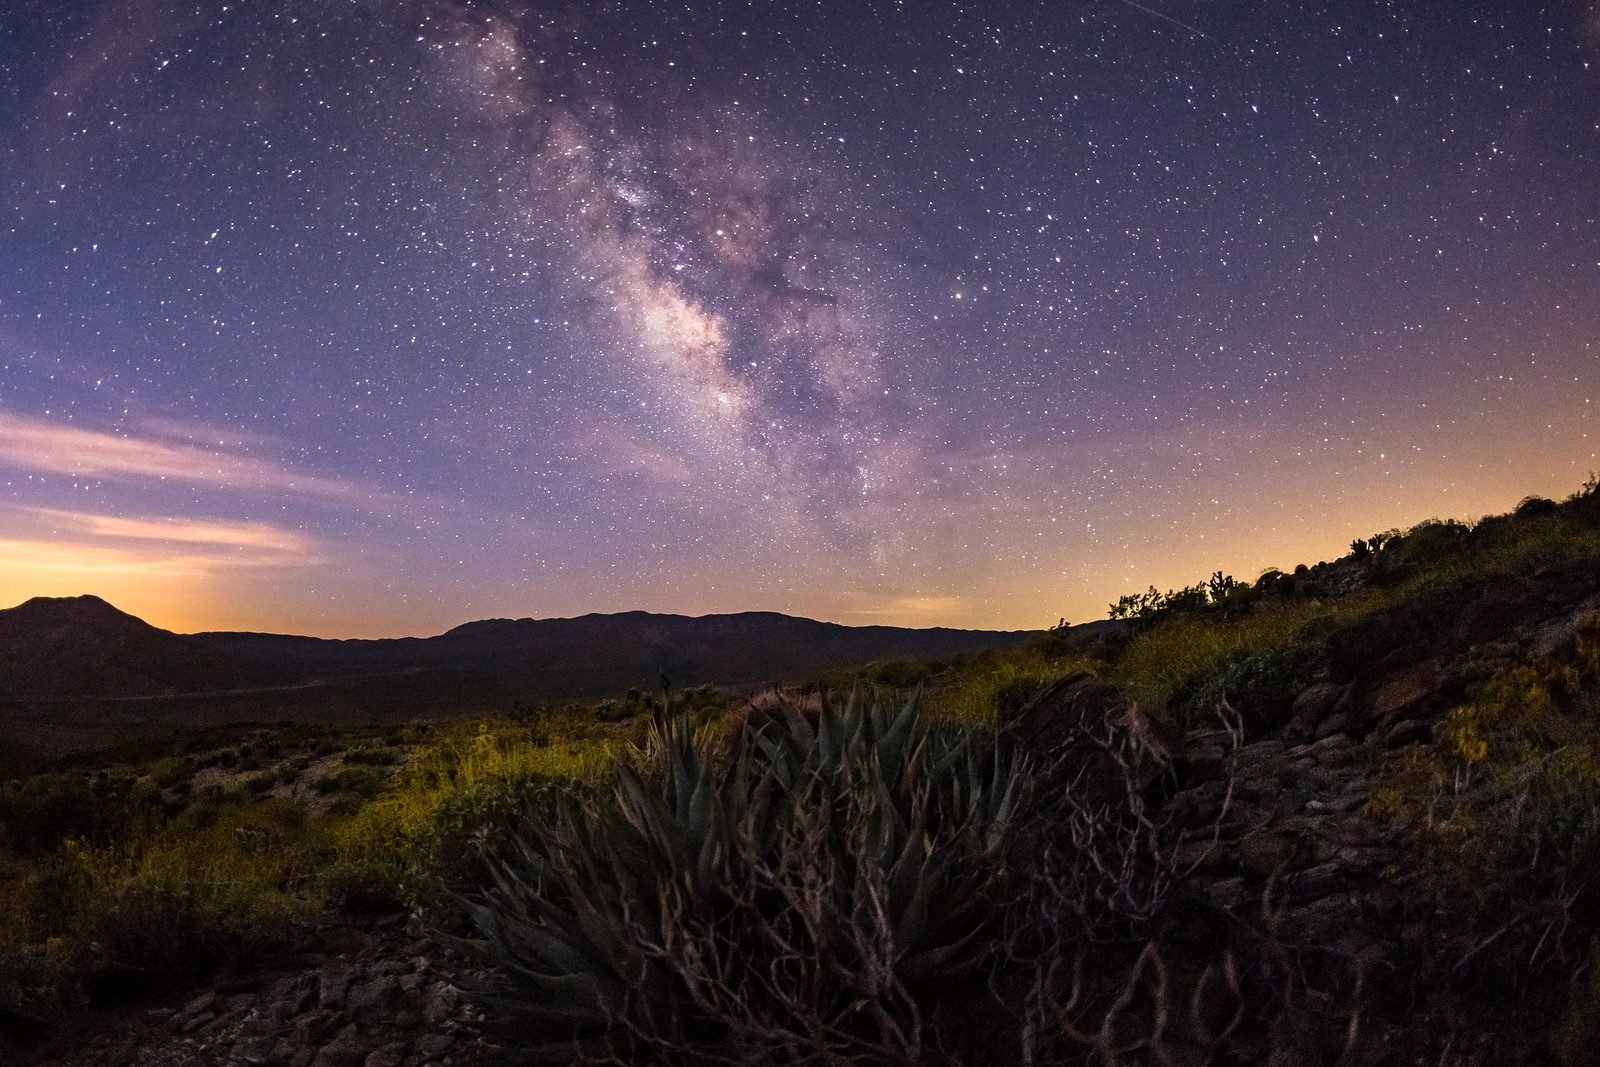 Milky Way Over a Hillside of Agave and Brittlebush at Twilight in the Anza-Borrego Desert.